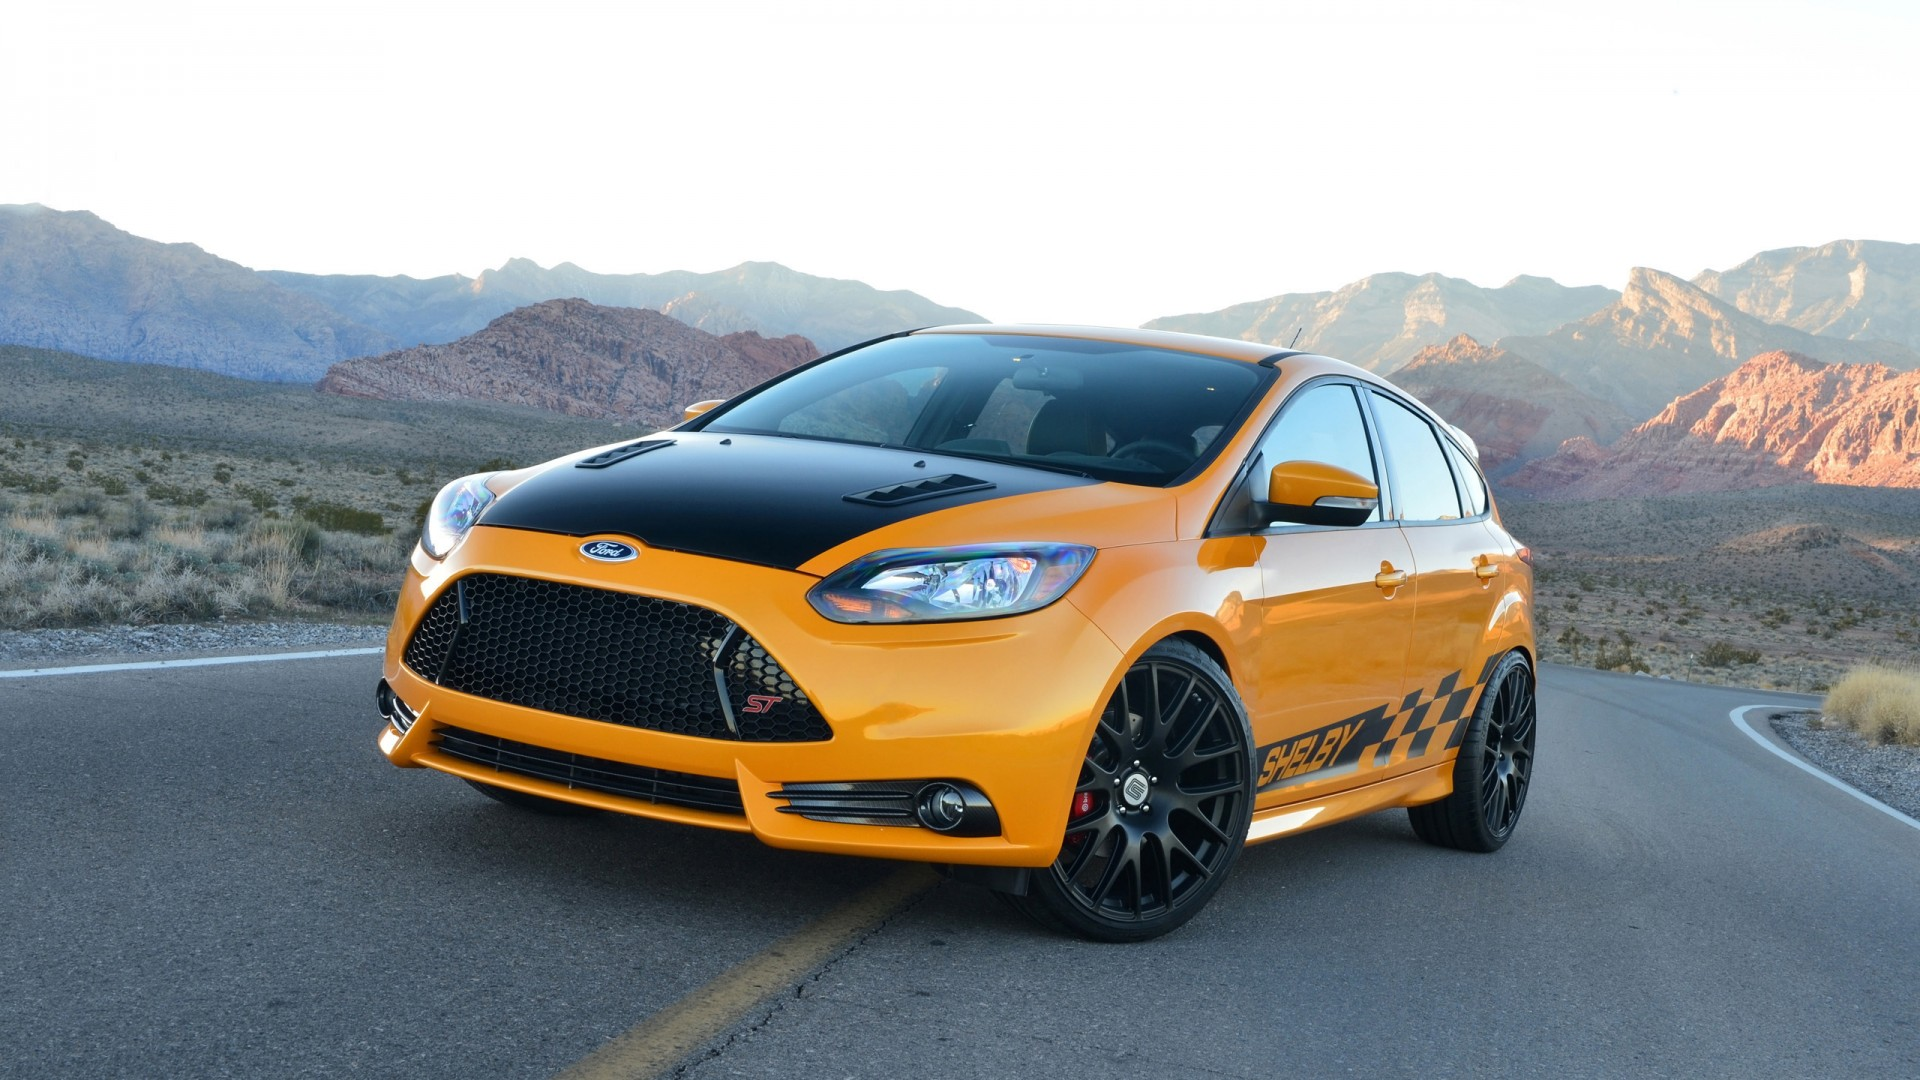 2018 Ford Focus St >> 2014 Shelby Ford Focus ST Wallpaper | HD Car Wallpapers ...